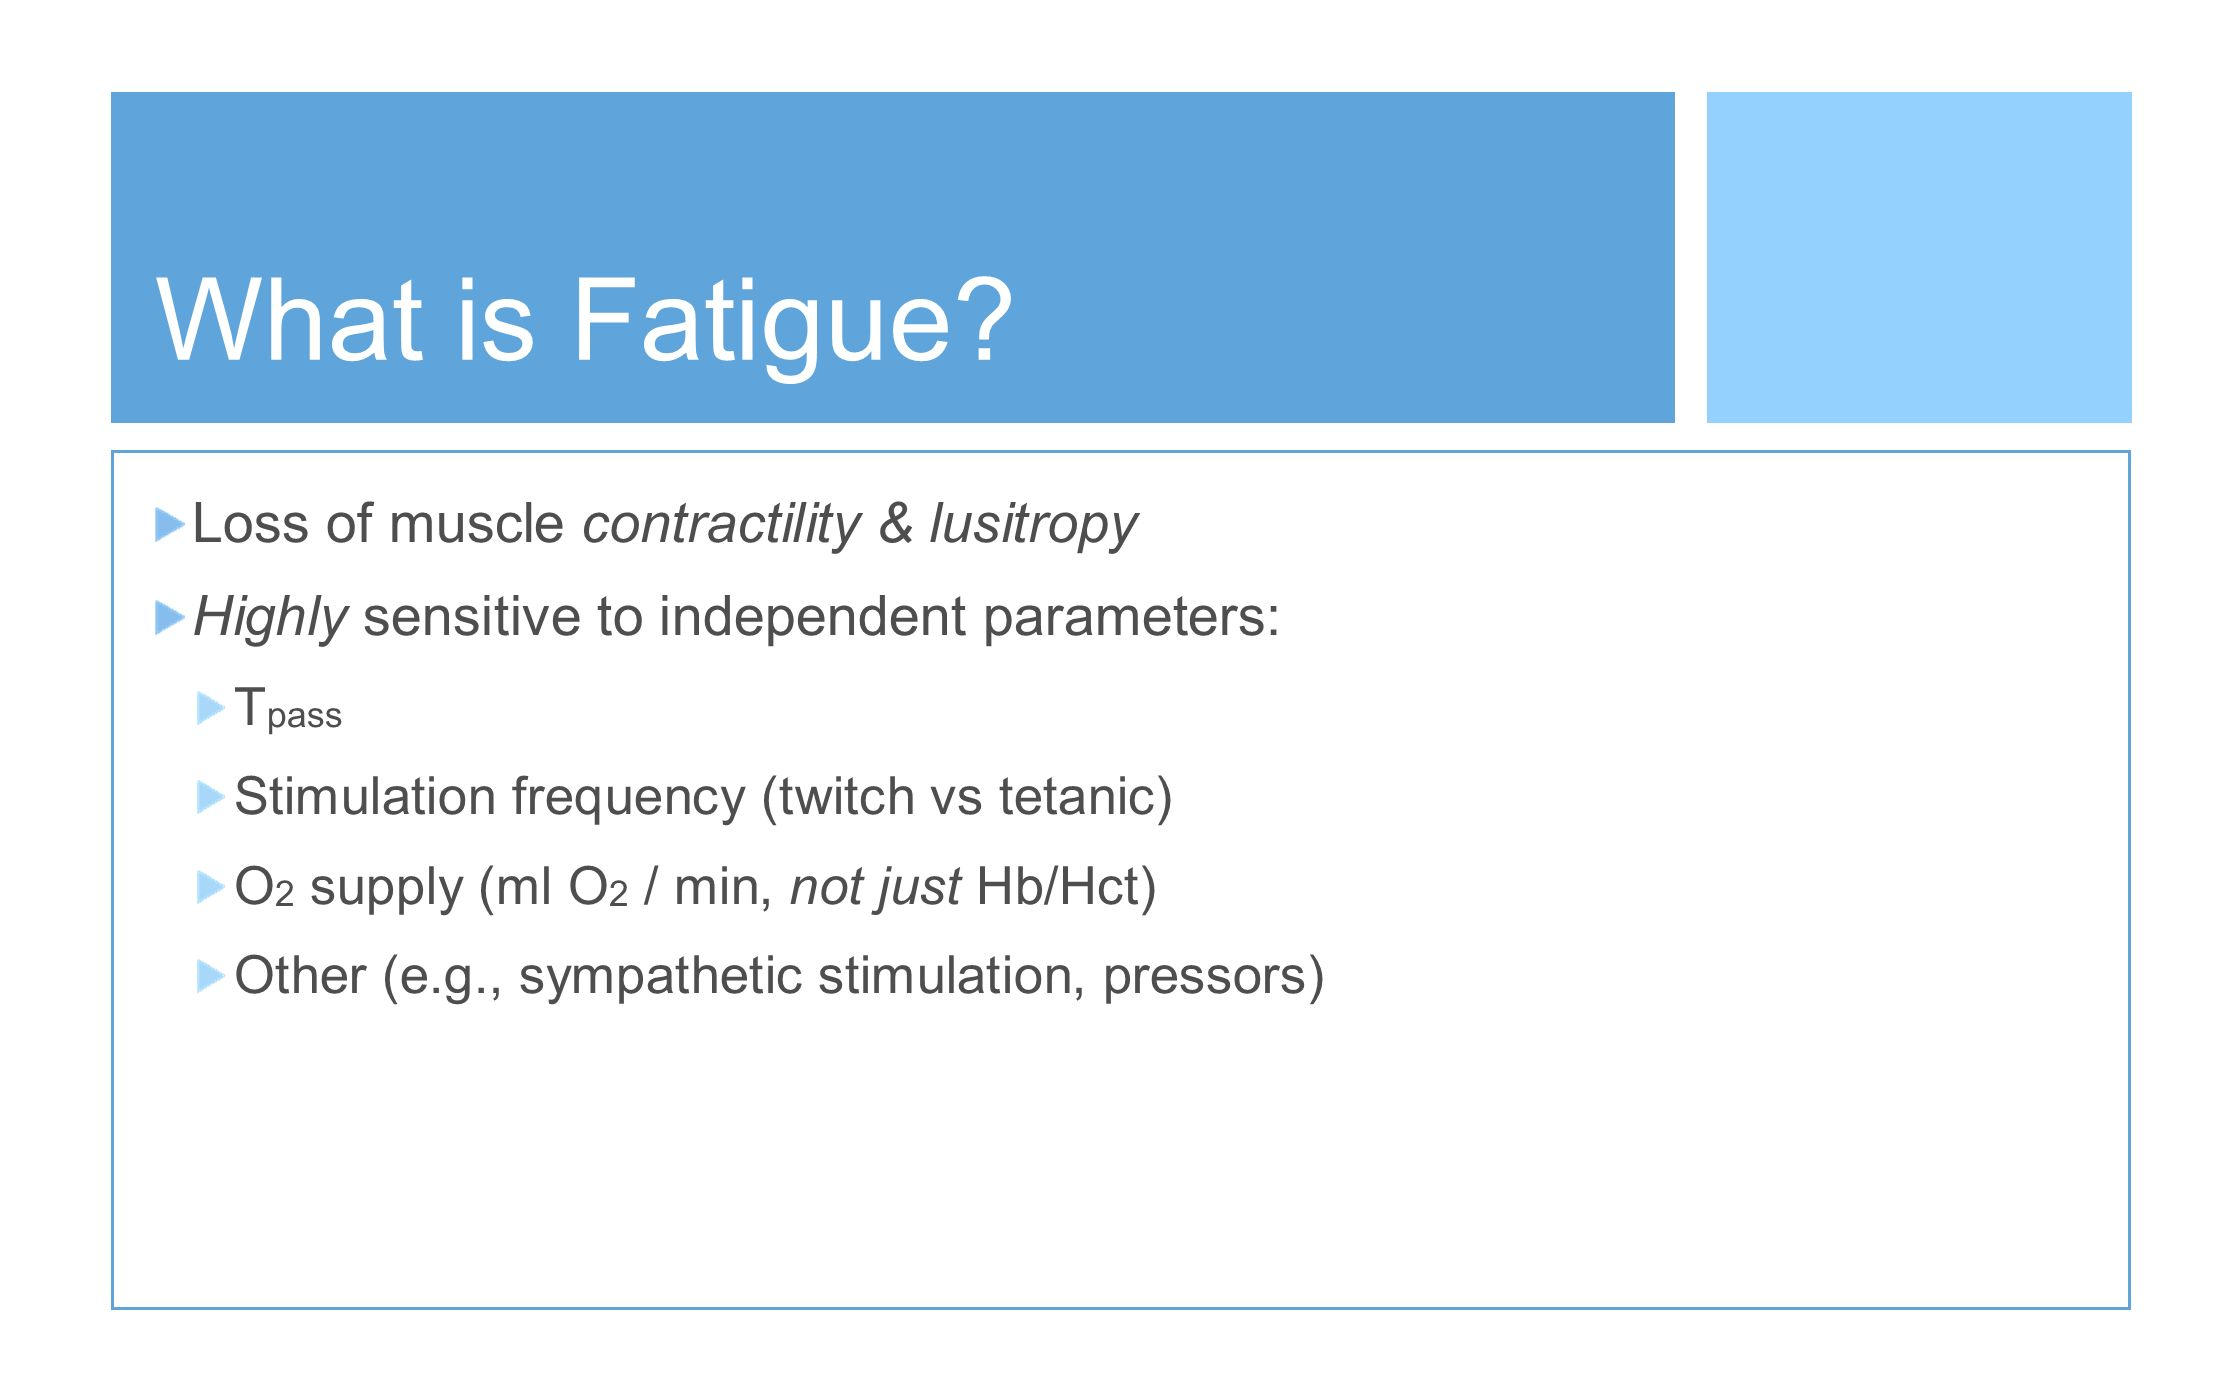 What is Fatigue Loss of muscle contractility & lusitropy